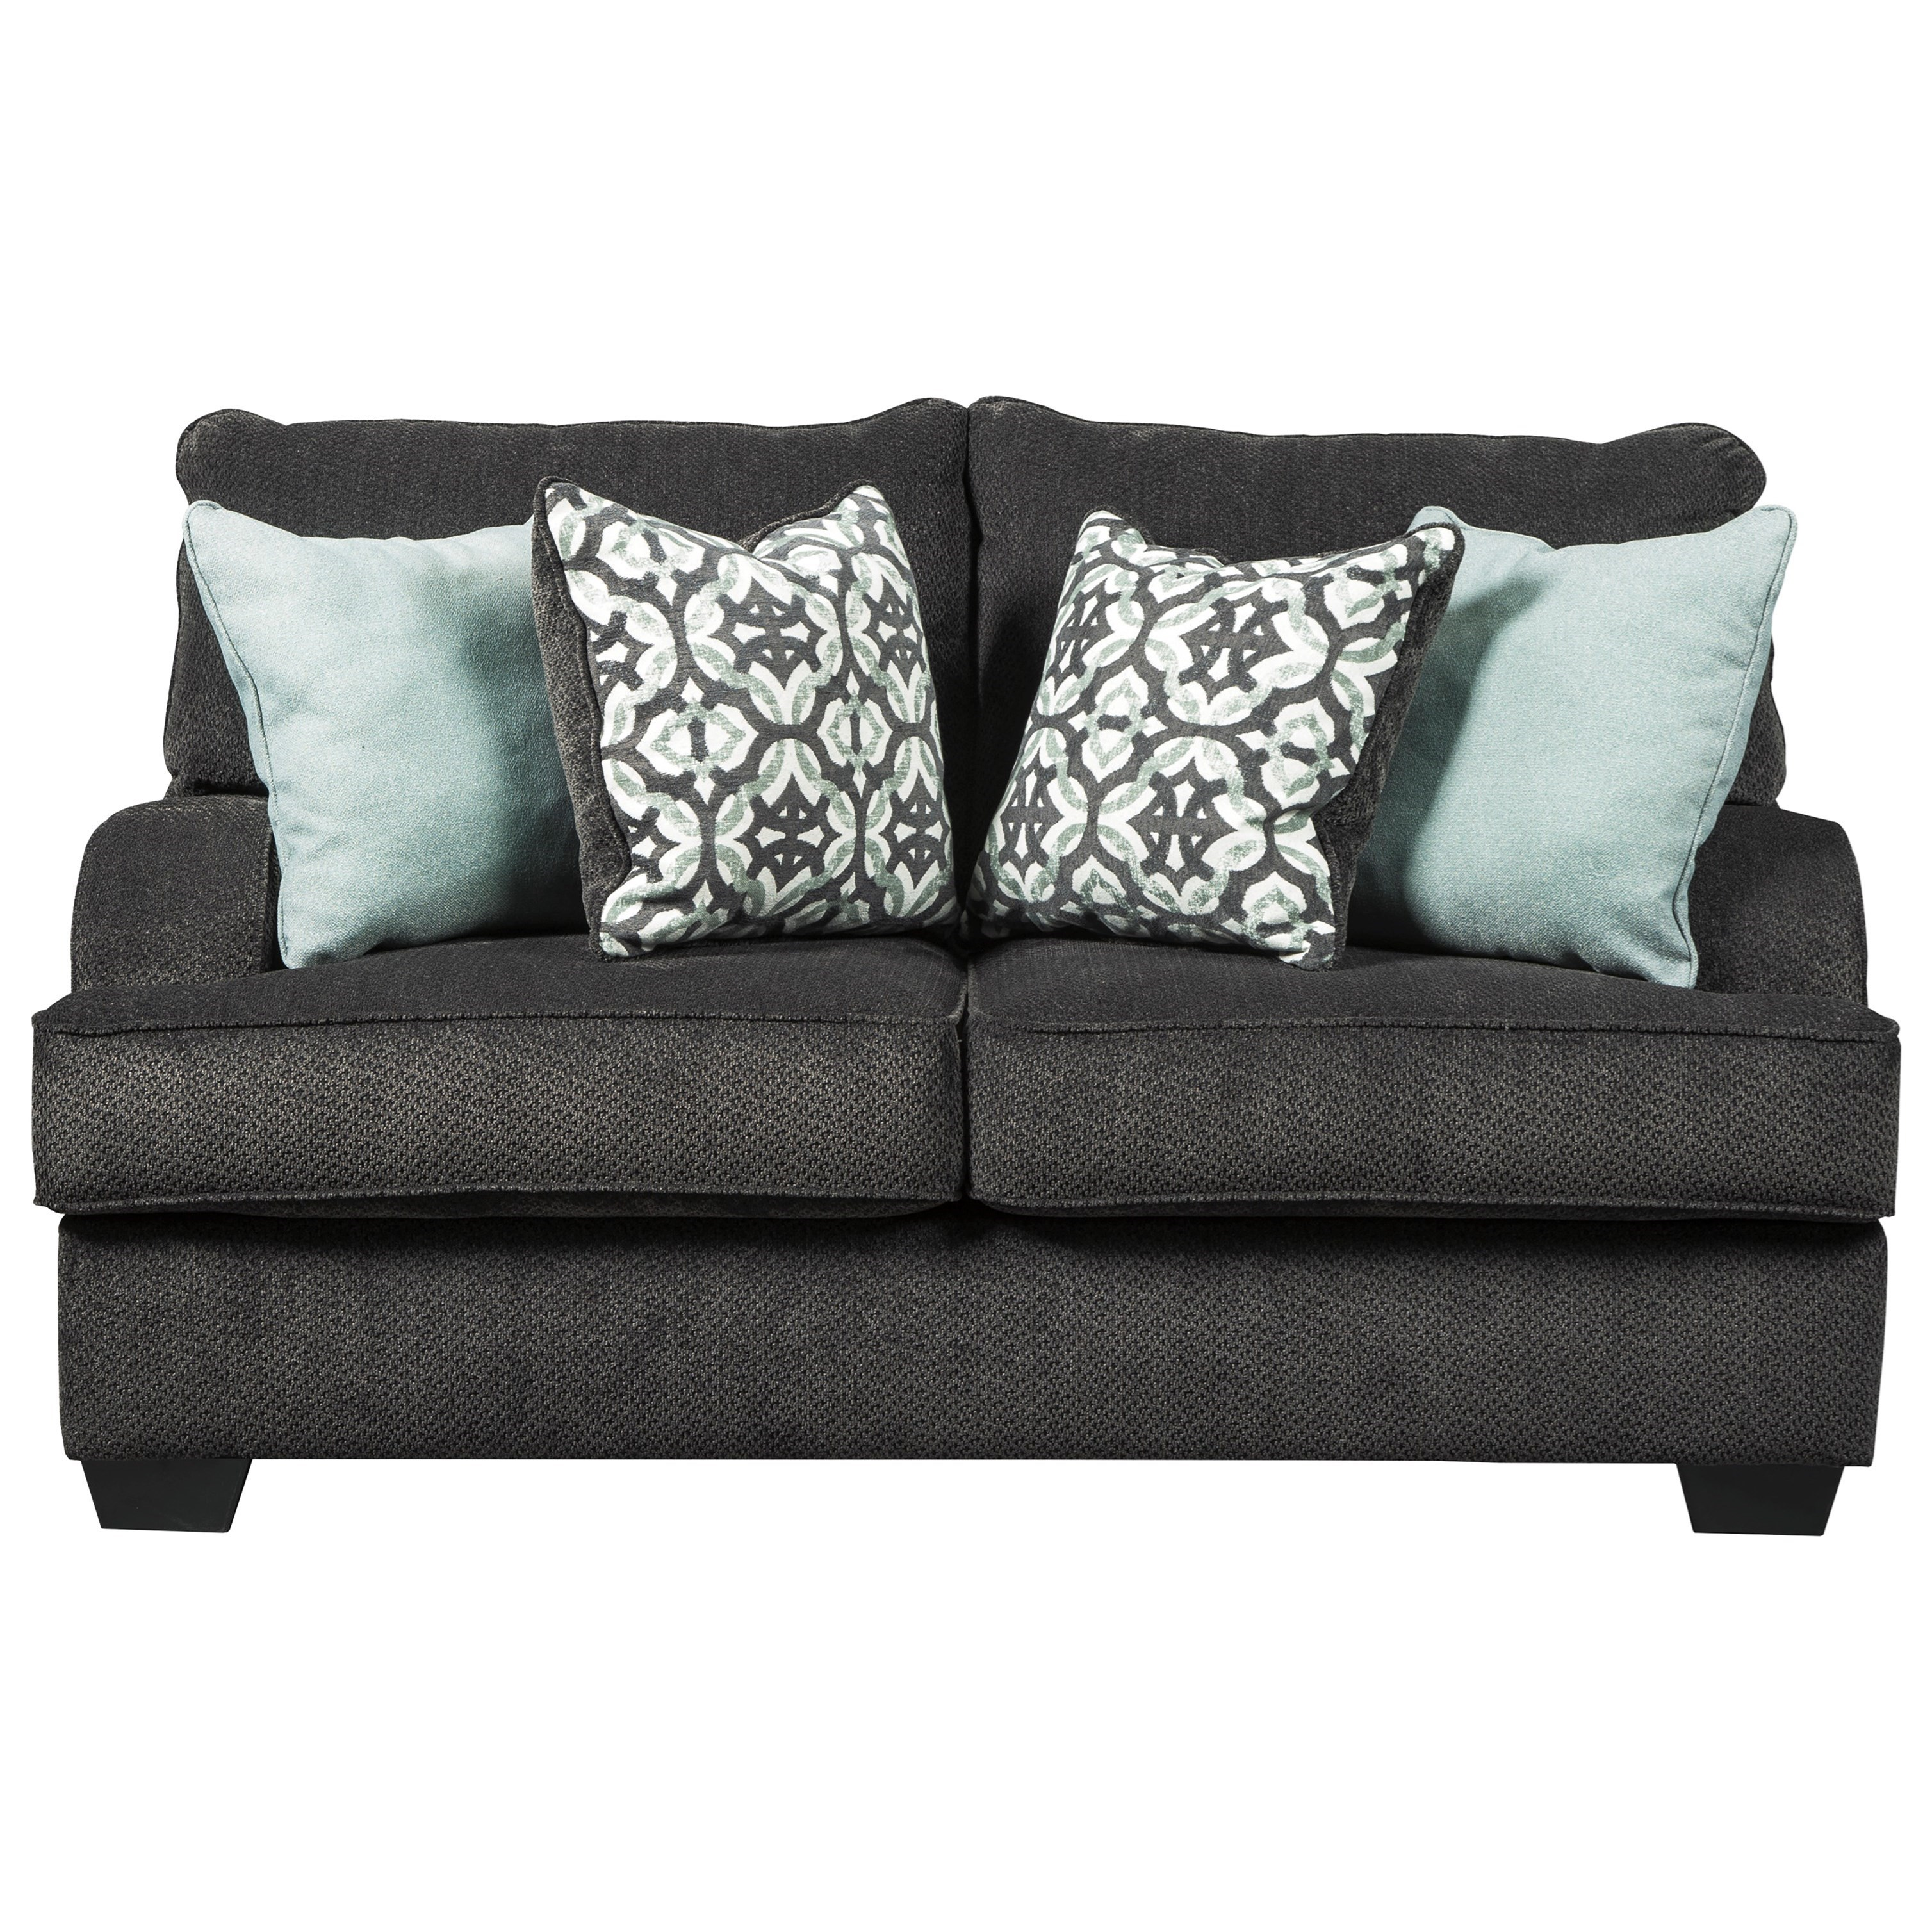 Charenton Loveseat by Benchcraft at Beck's Furniture